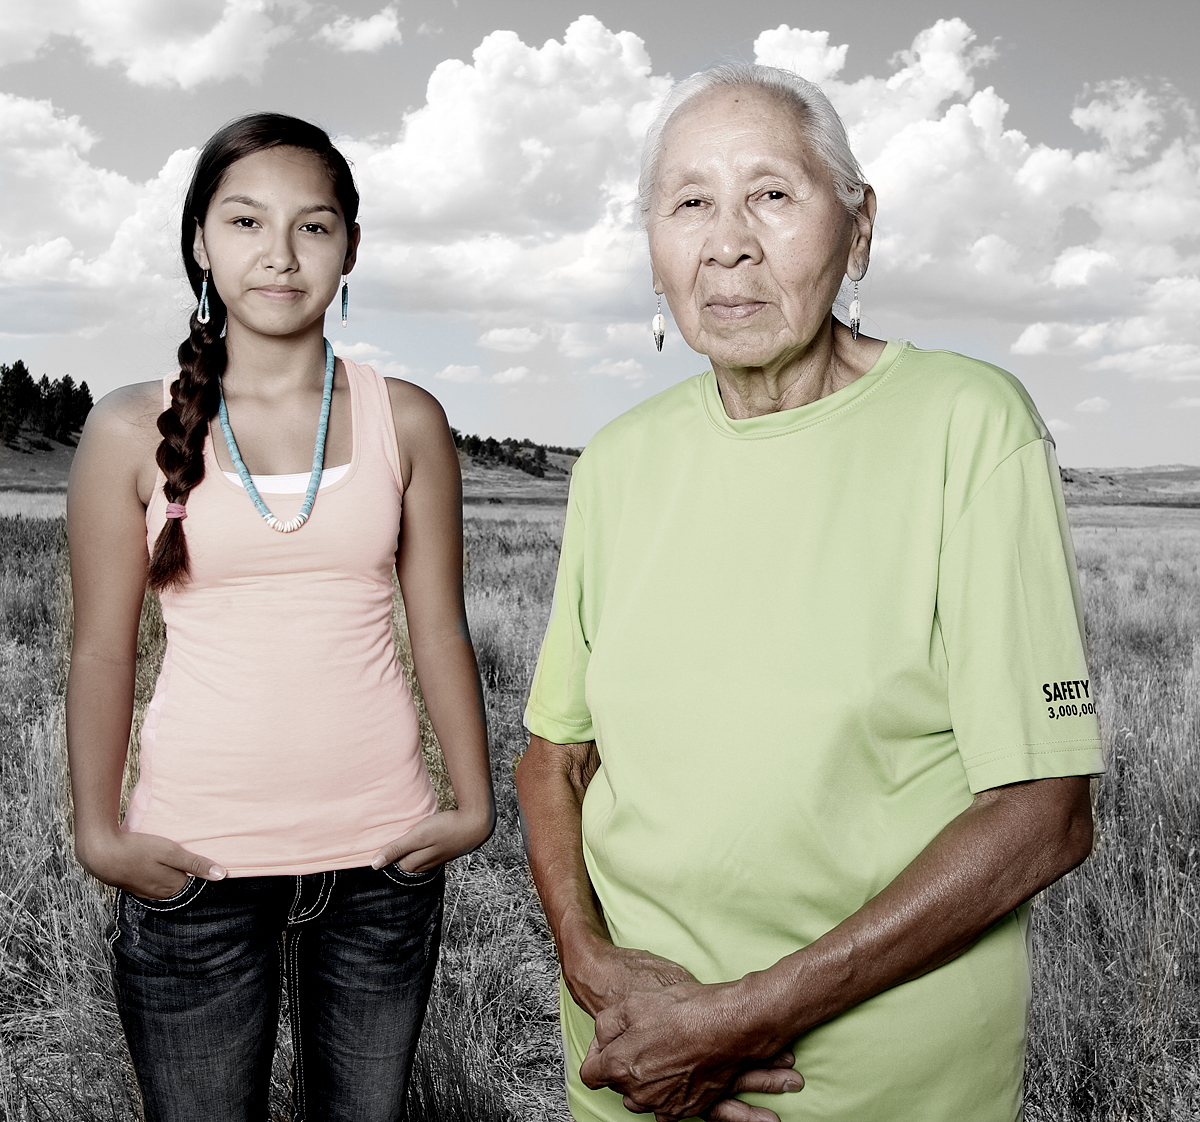 Native American travels across U.S. photographing citizens of tribal nations